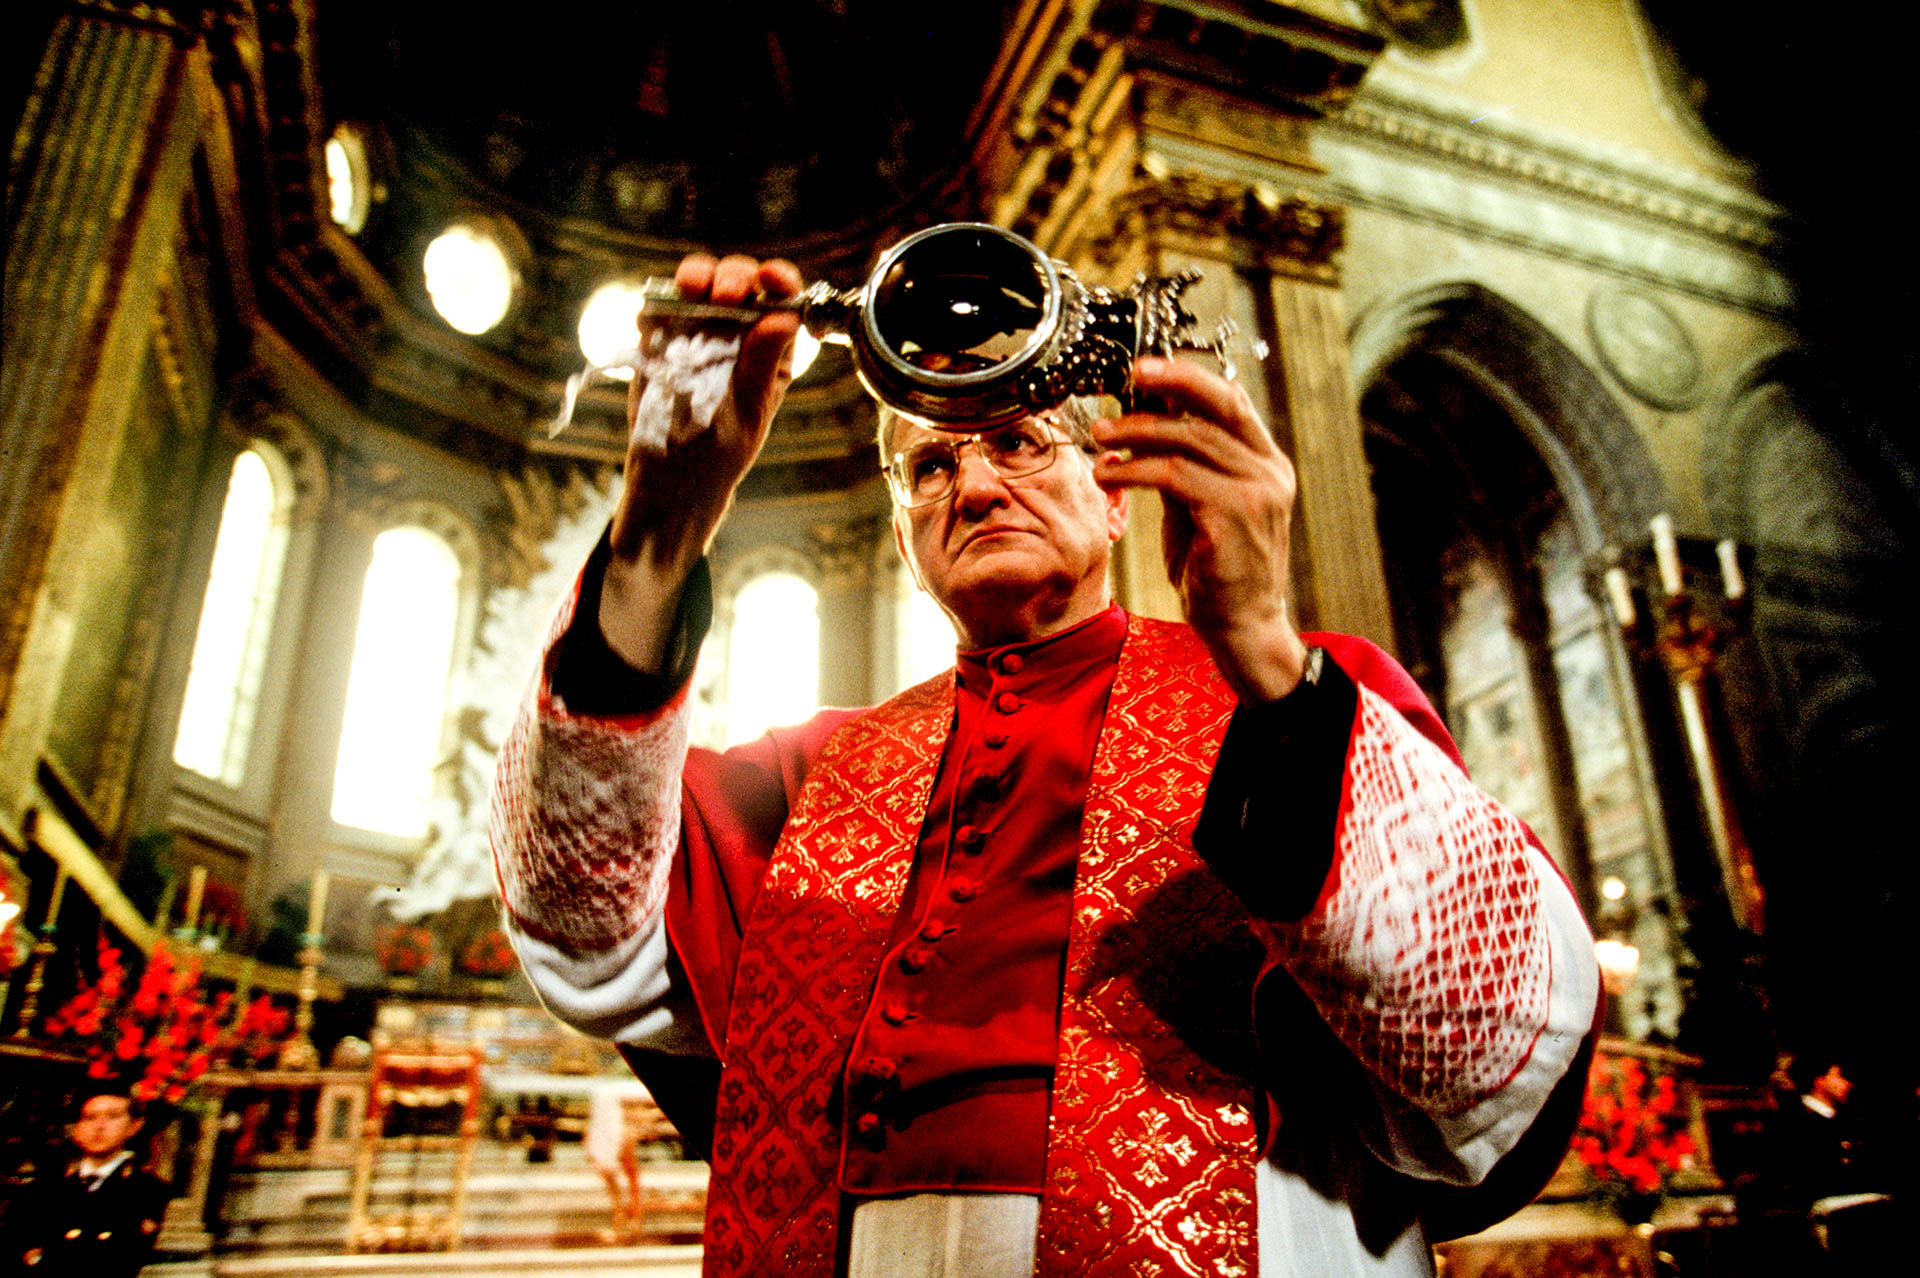 The miracle around the world: the bishop displays to the believers the blood of a saint.